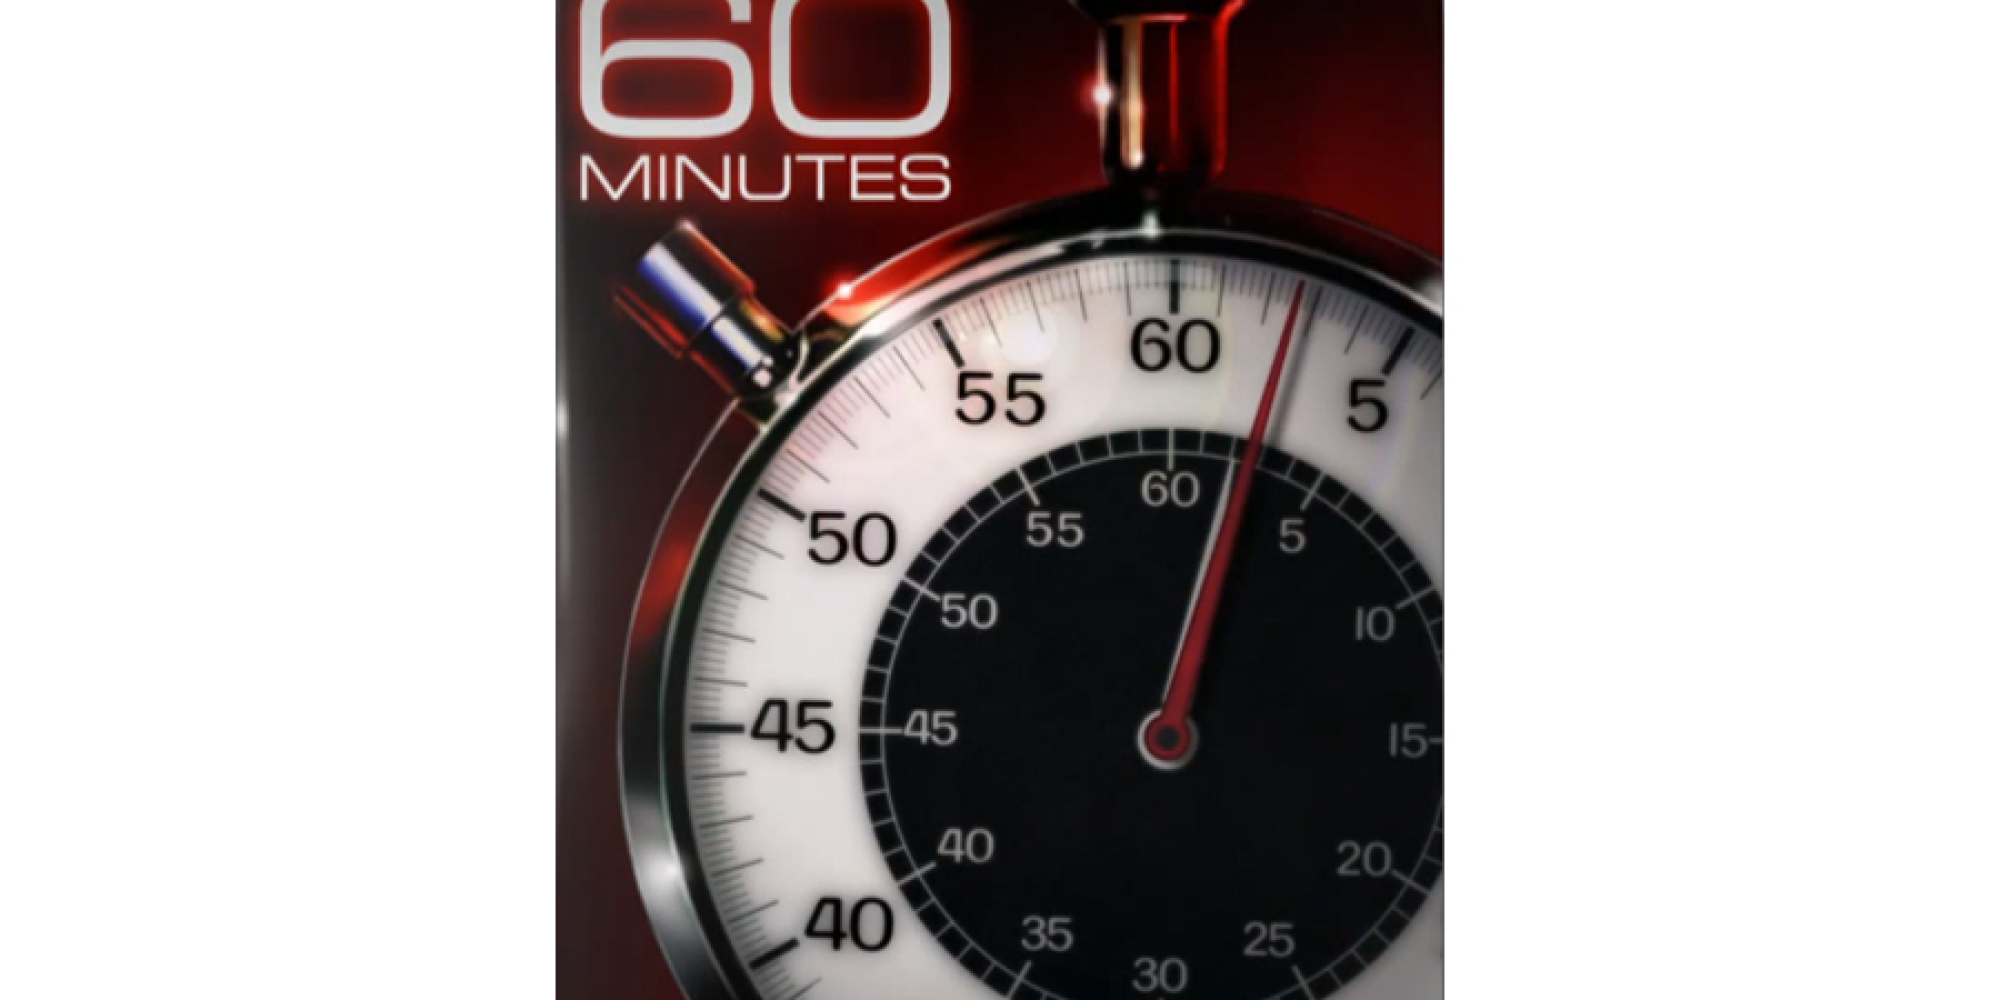 60 Minutes the most successful broadcast in television history Offering hardhitting investigative reports interviews feature segments and profiles of people in